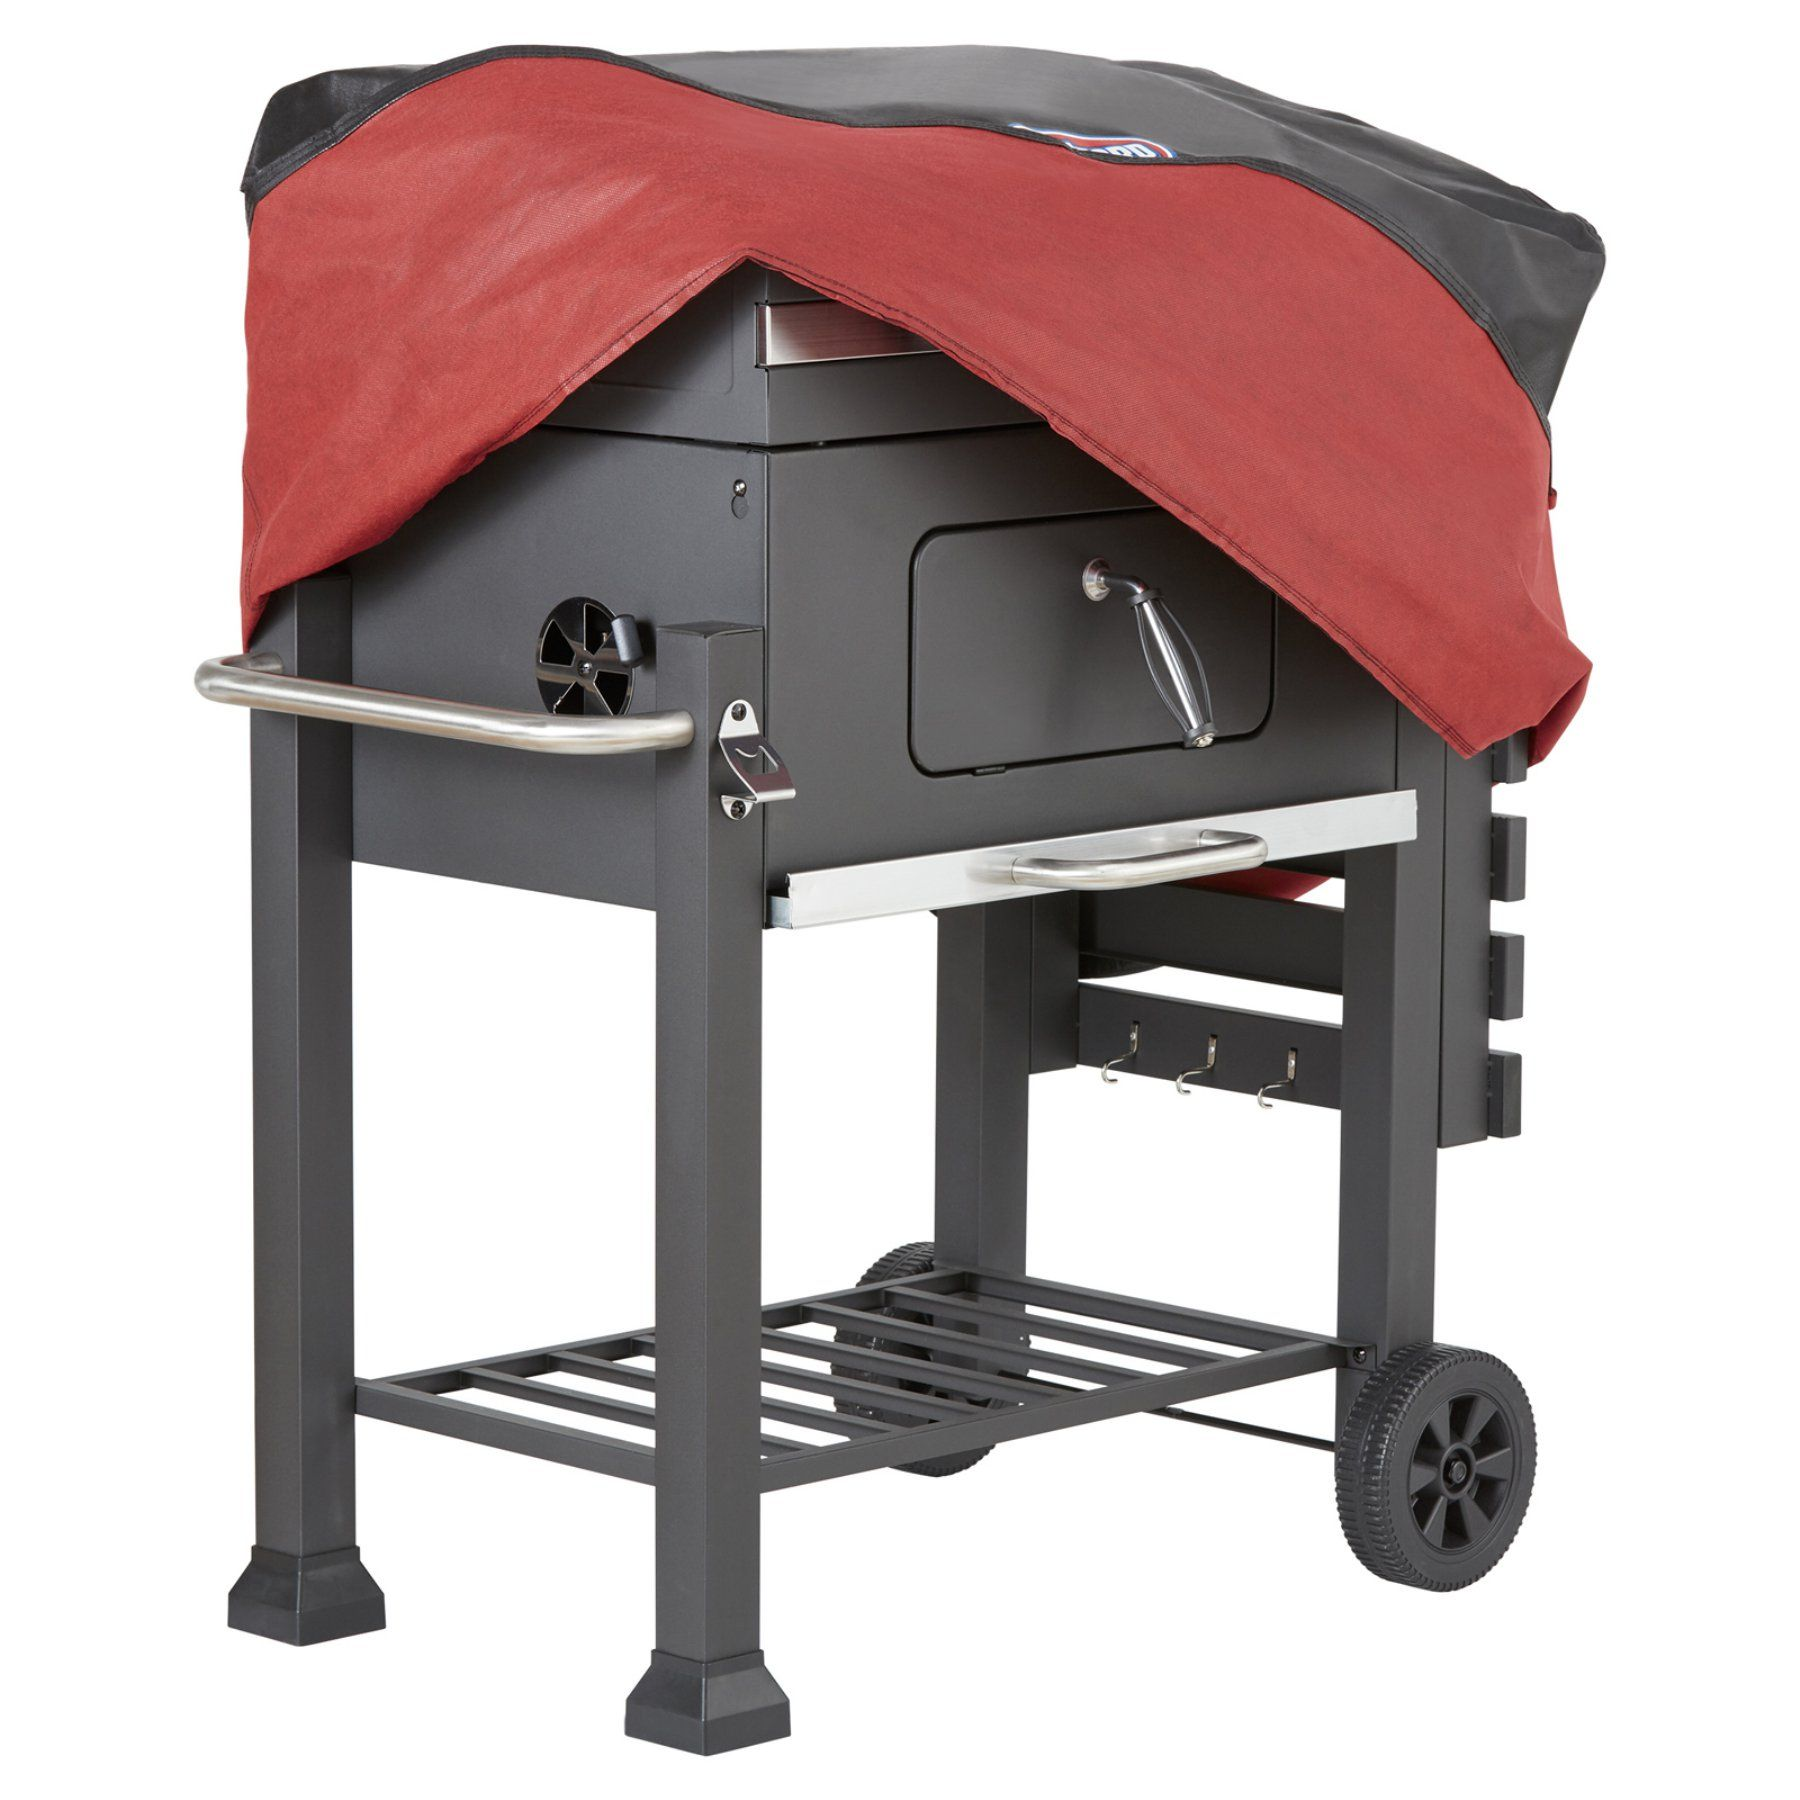 Kingsford 32 Inch Black Charcoal Grill Cover In 2018 Products